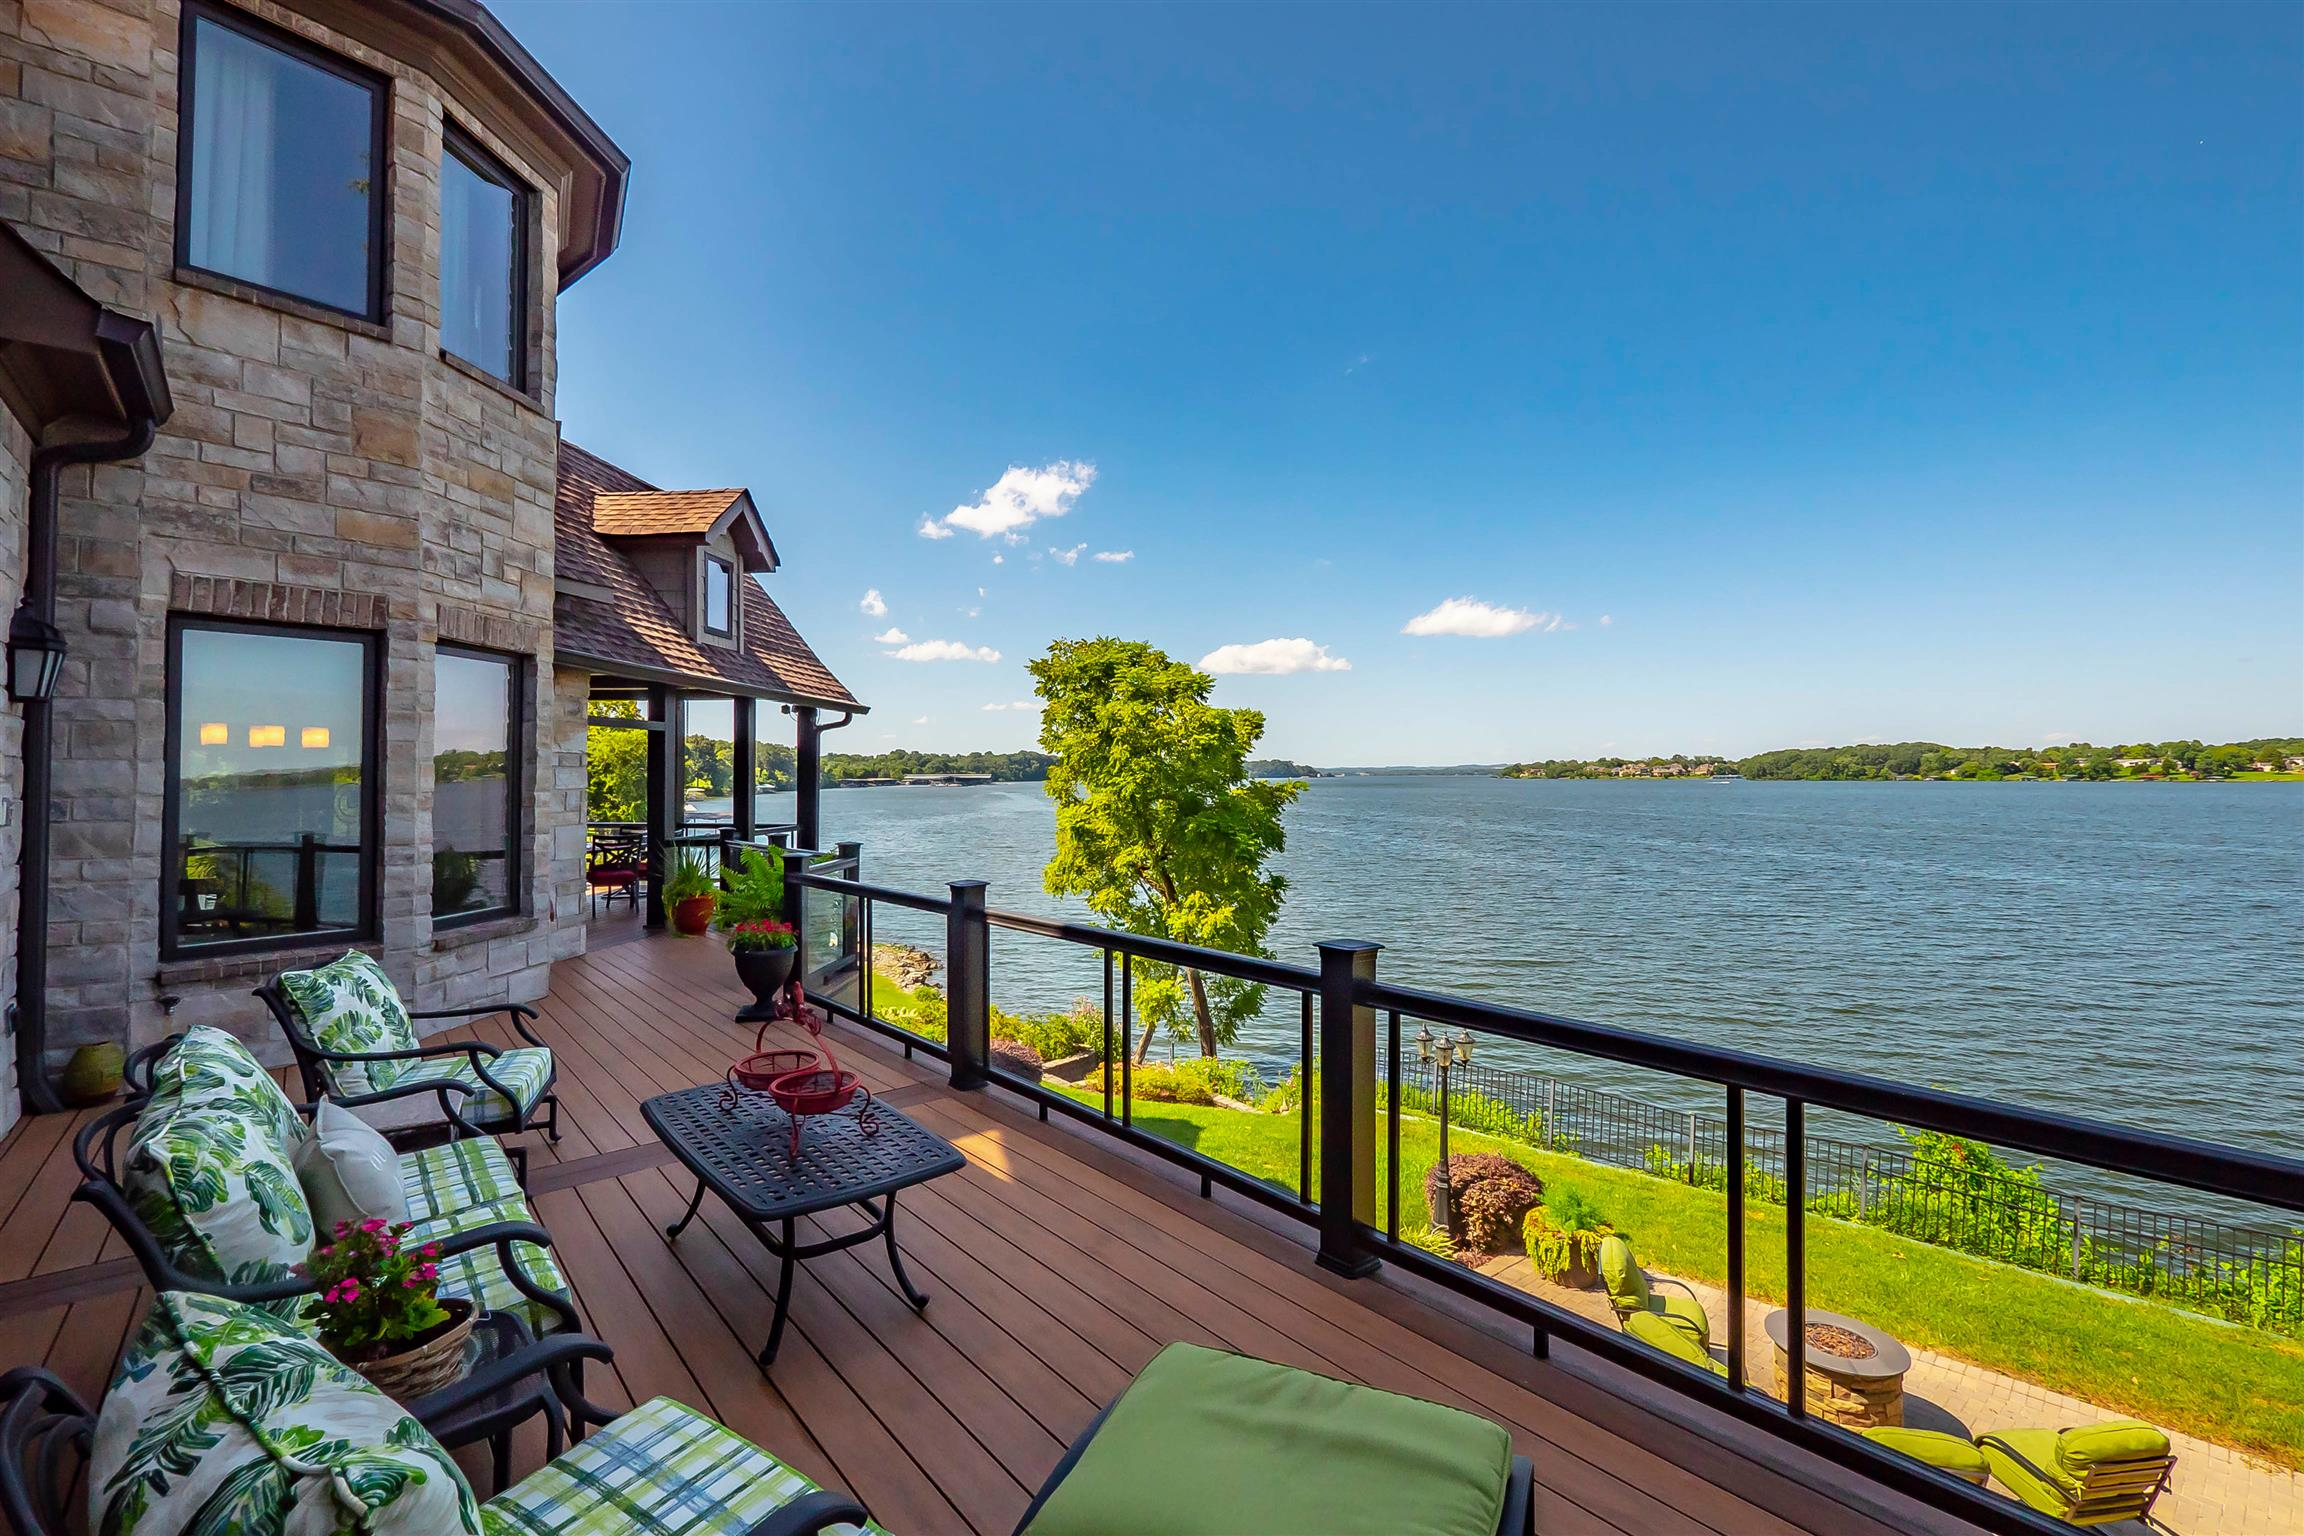 721 Lakeshore Pt, Old Hickory, TN 37138 - Old Hickory, TN real estate listing